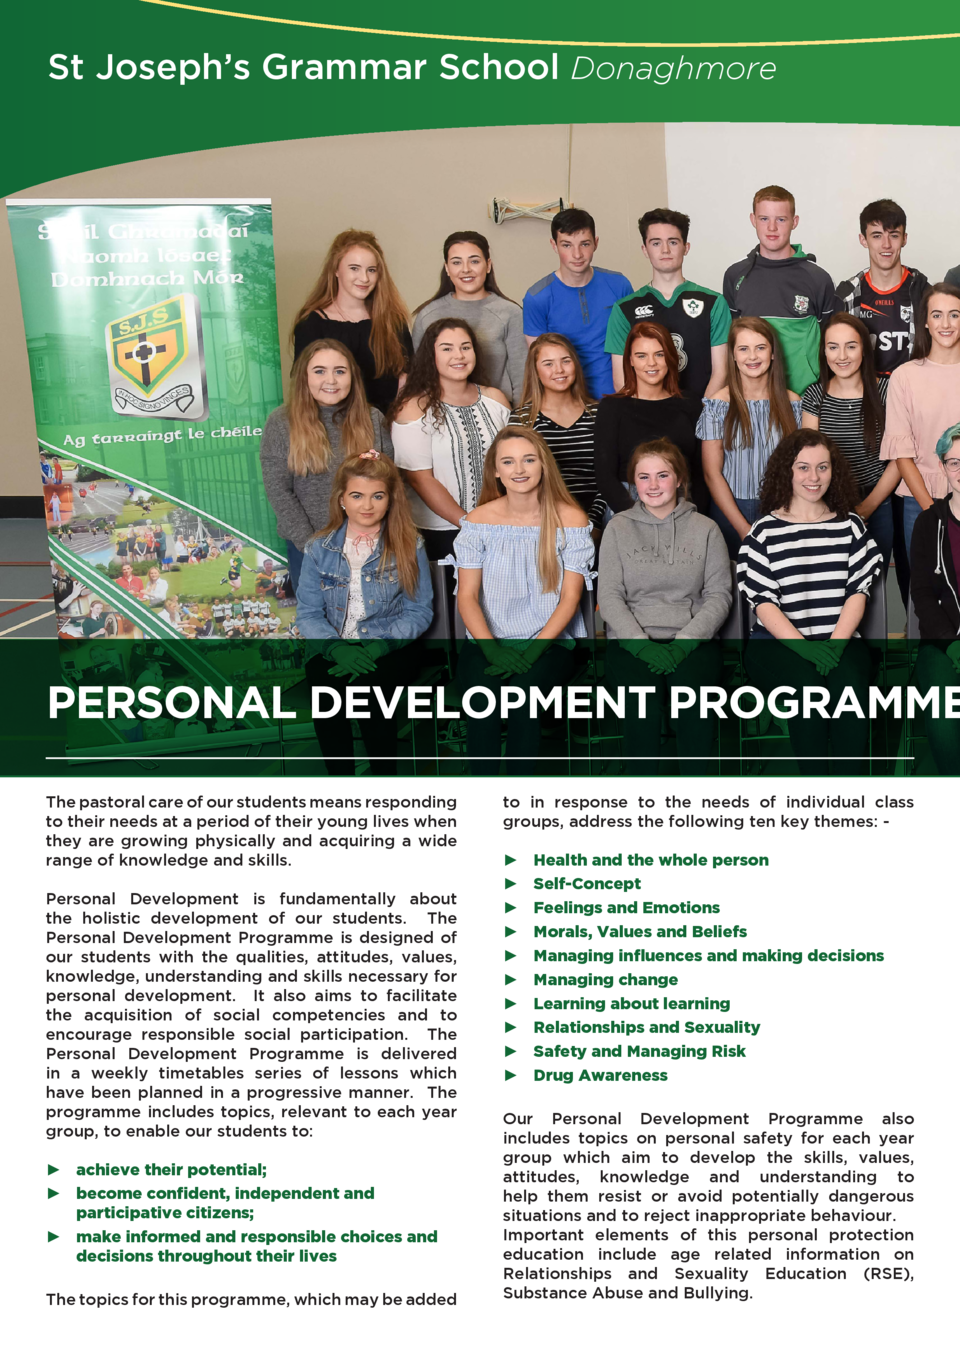 St Joseph   s Grammar School Donaghmore  PERSONAL DEVELOPMENT PROGRAMME The pastoral care of our students means responding...